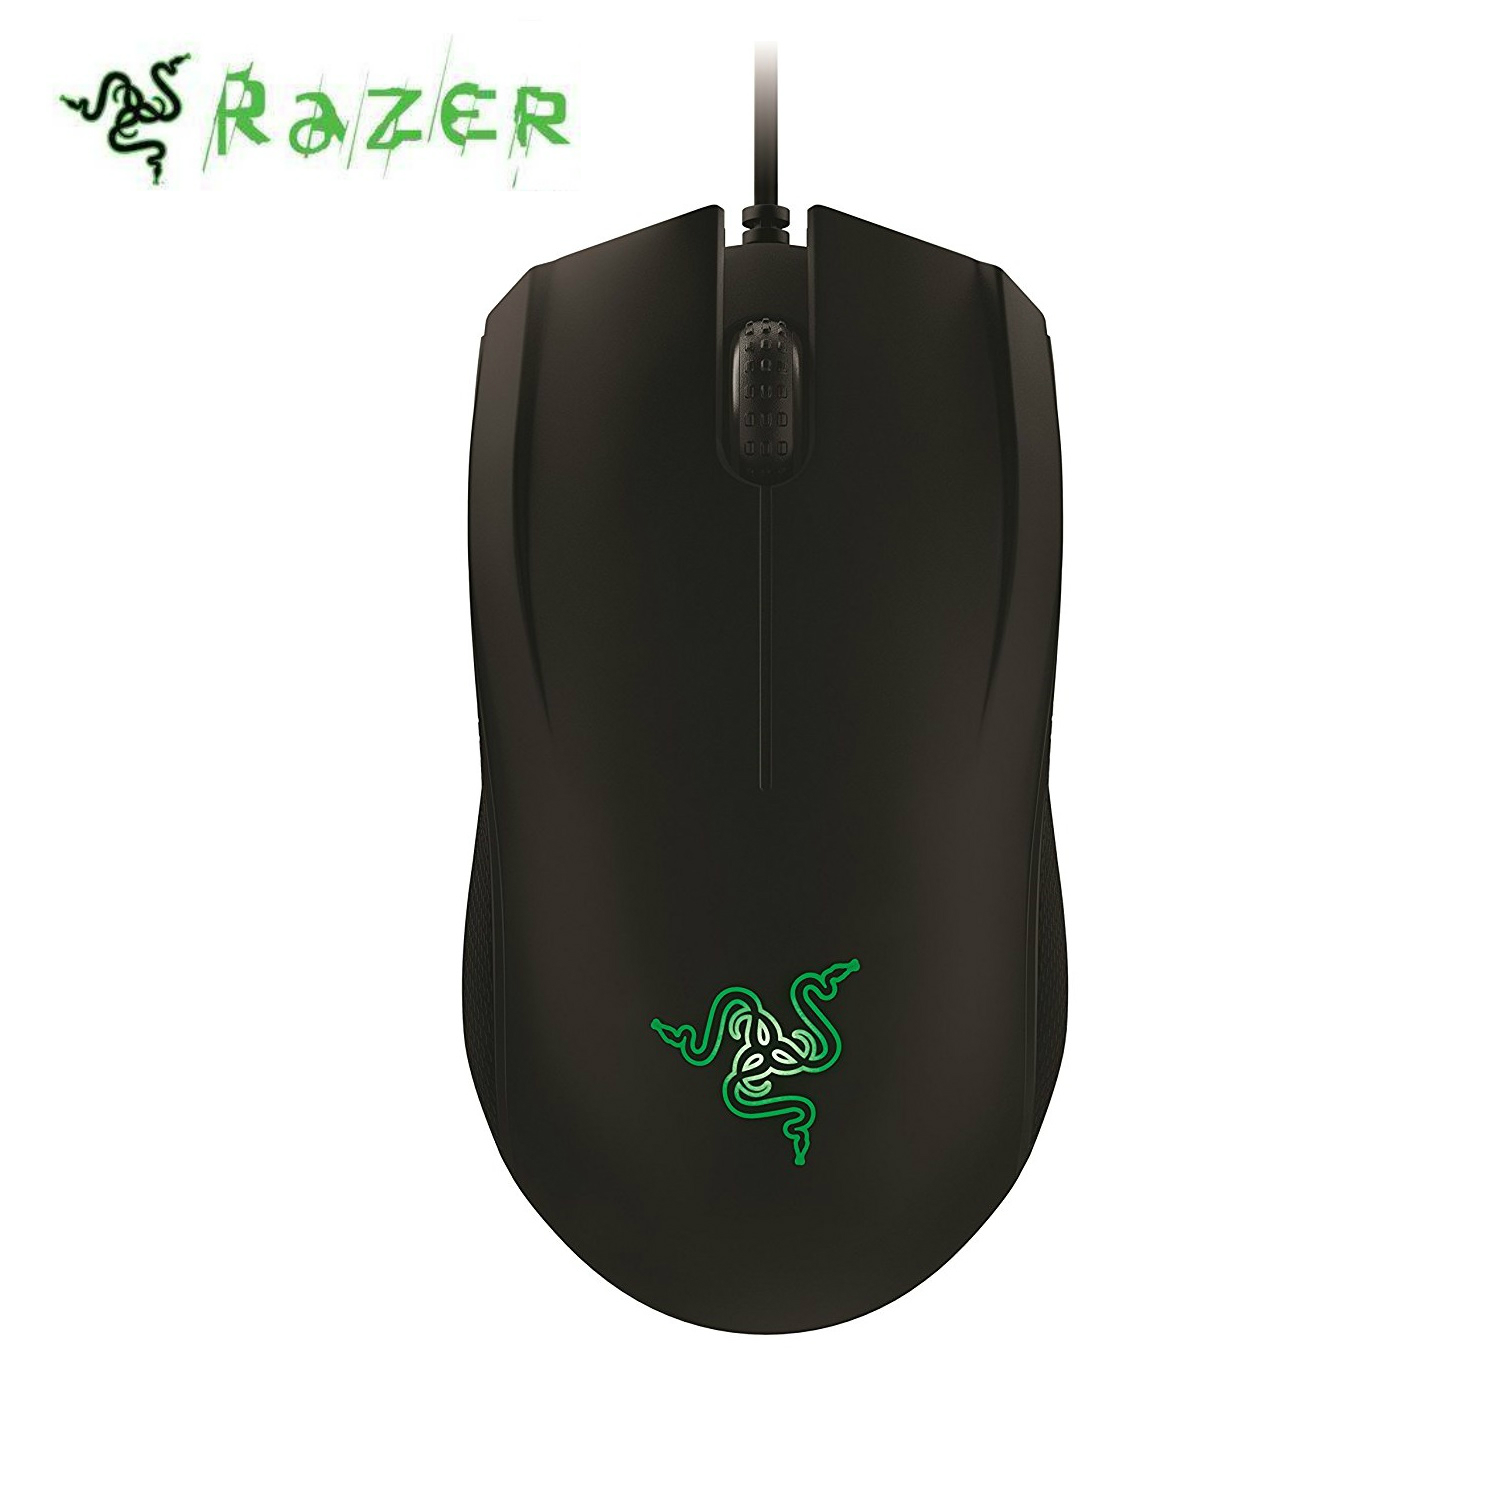 Aliexpress kup Razer Abyssus 2014 Gaming Mouse Essential 3500 DPI PC Gamer USB Wired Ergonomic Ambidextrous Professional For CSGO Overwatch od